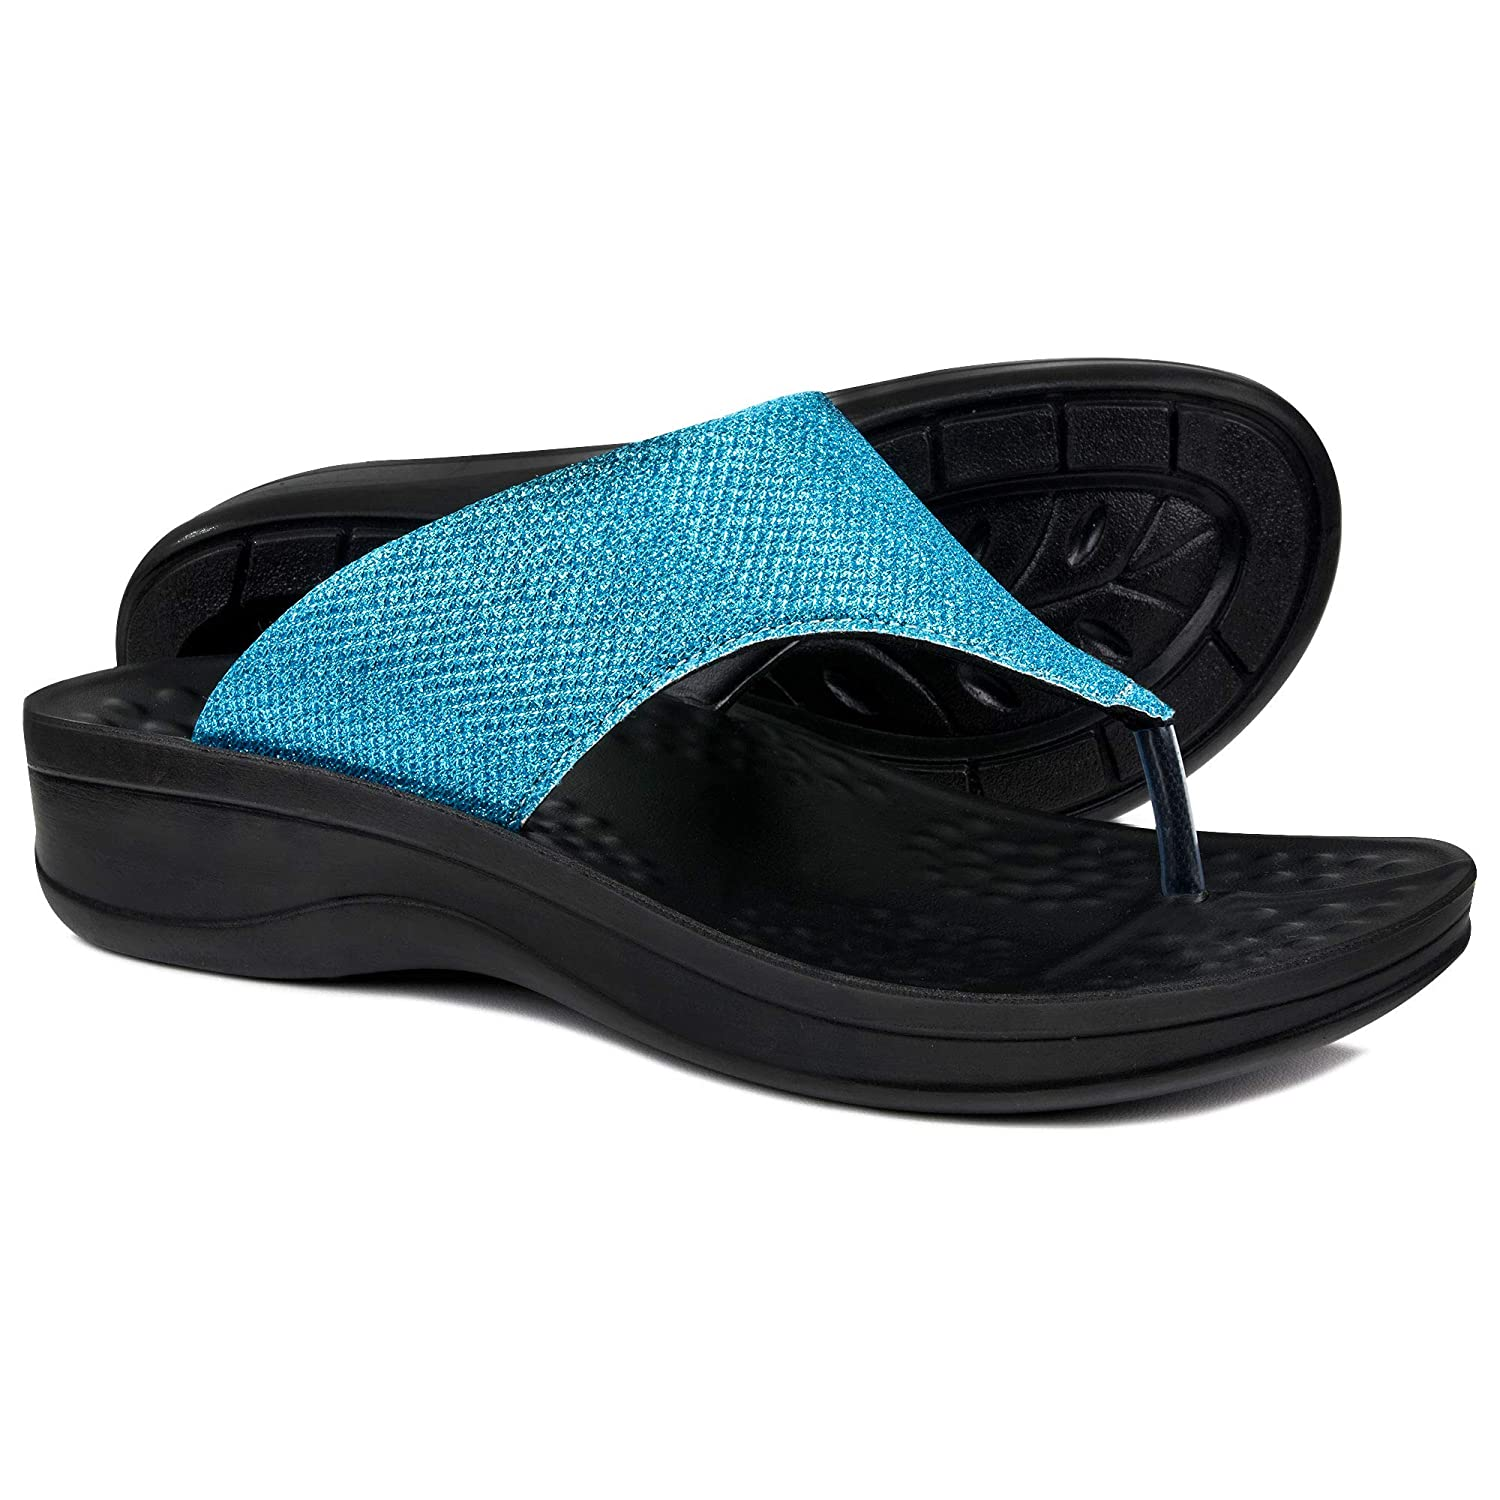 3dd4f526524ac AEROTHOTIC Comfortable Orthopedic Arch Support Flip Flops and Sandals for  Women